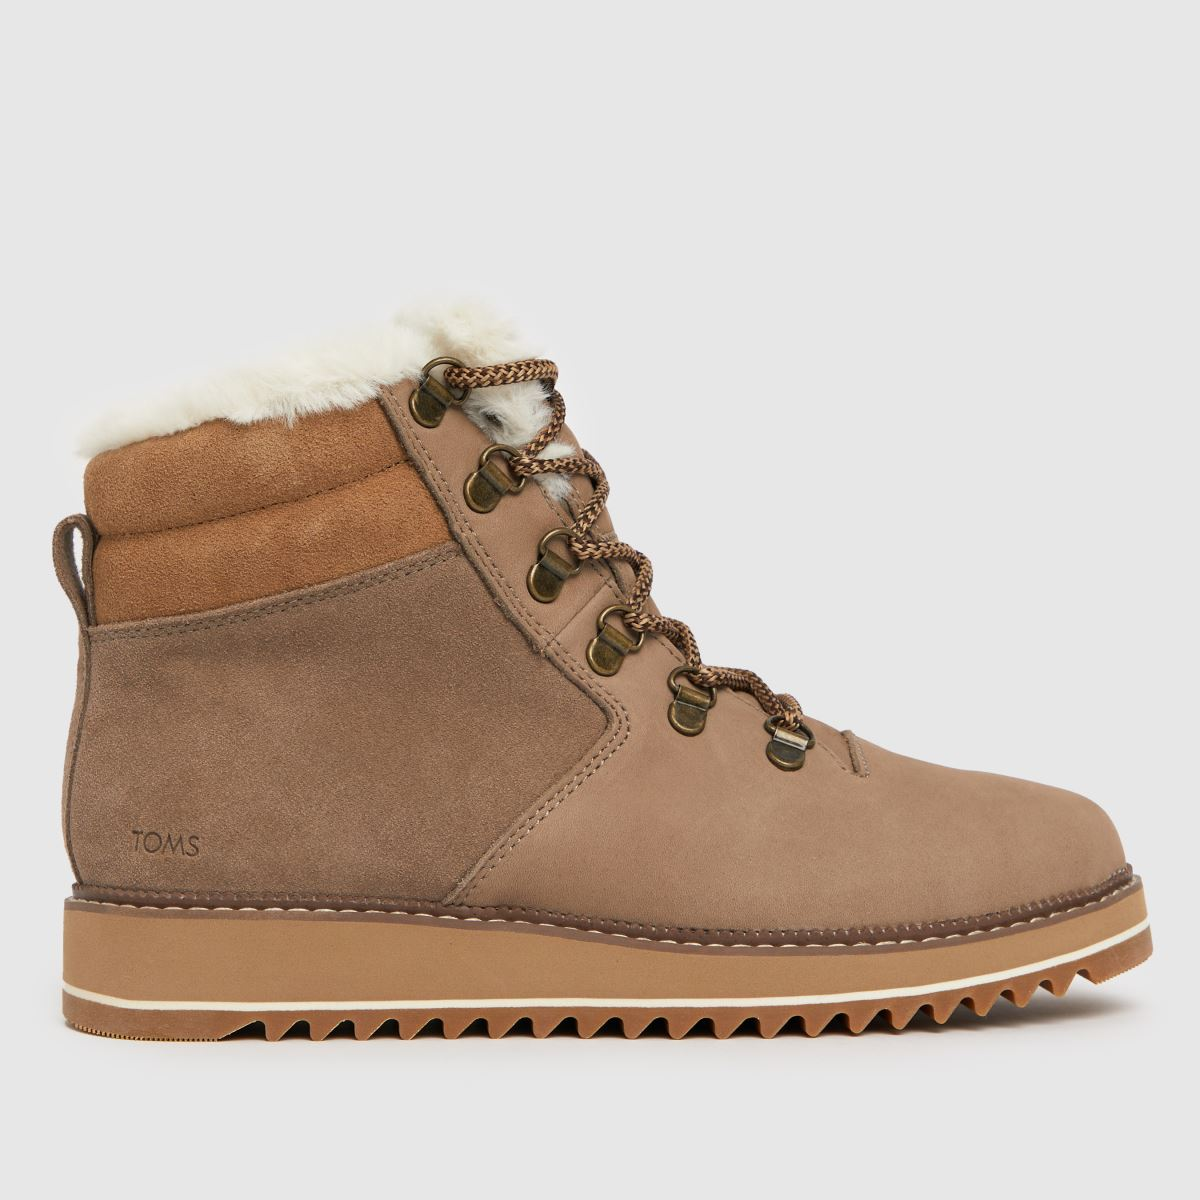 TOMS Tan Mojave Boots